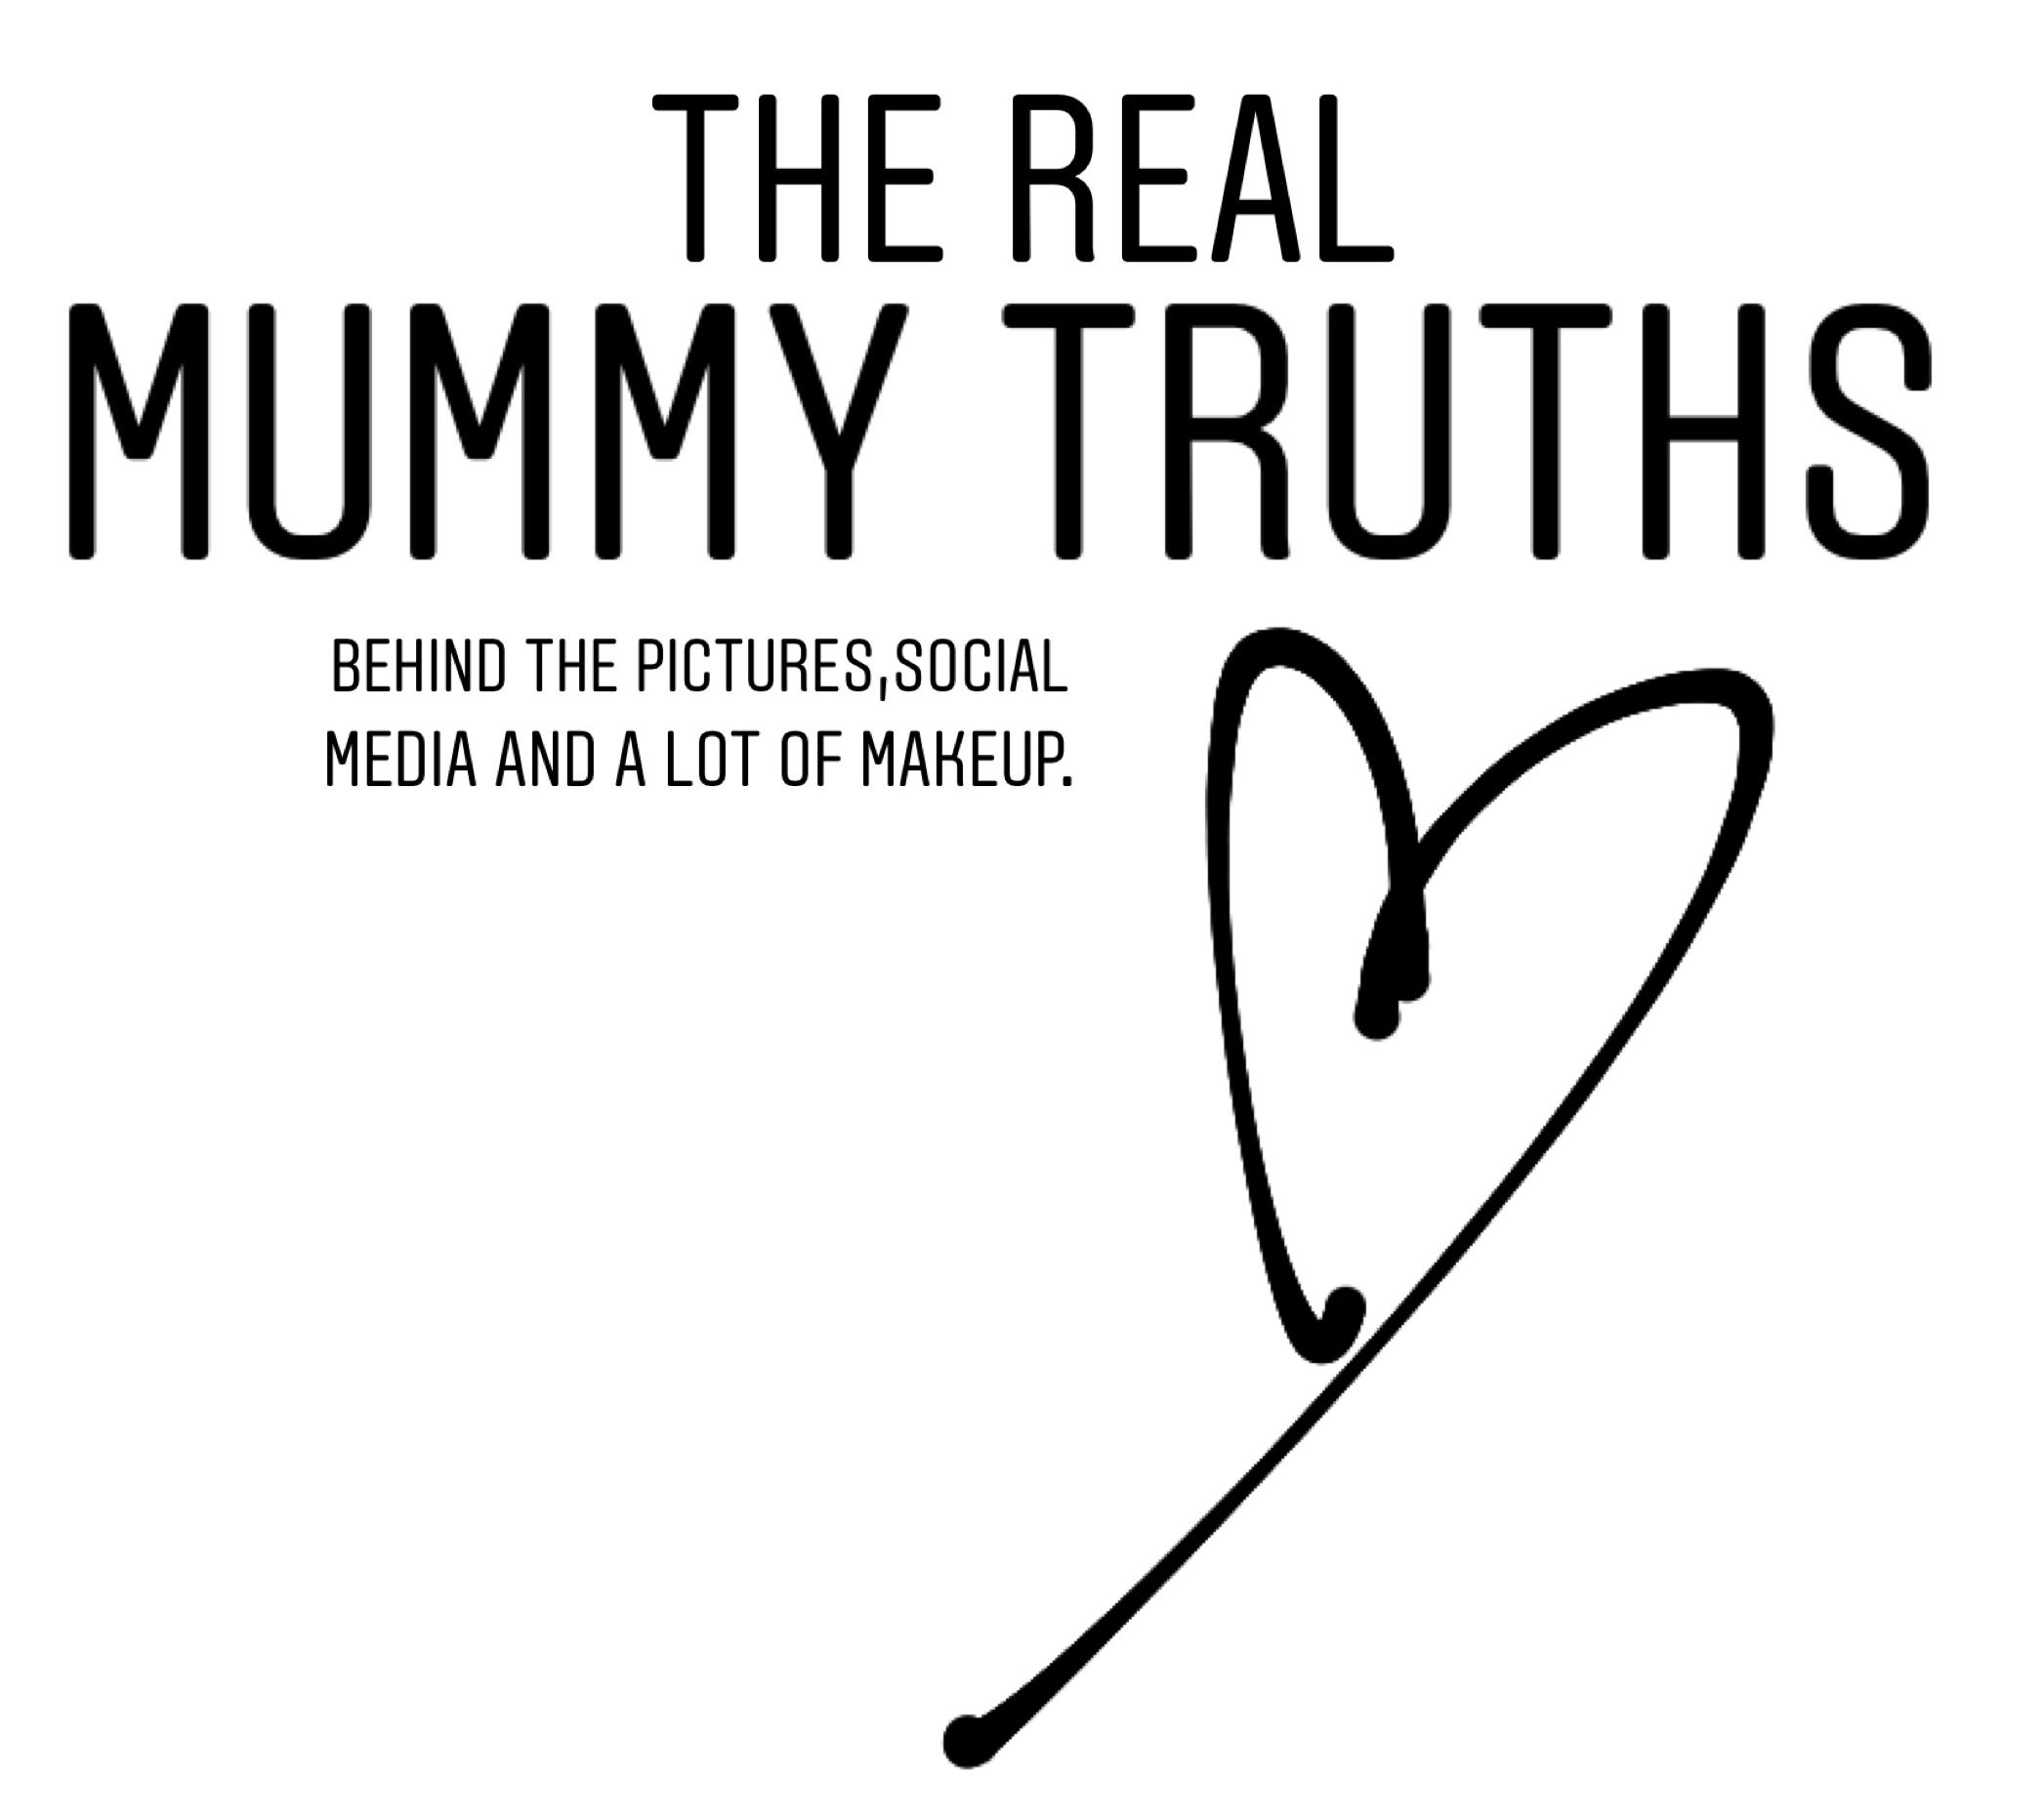 The real mummy truths behind the pictures , social media and a lot of makeup.